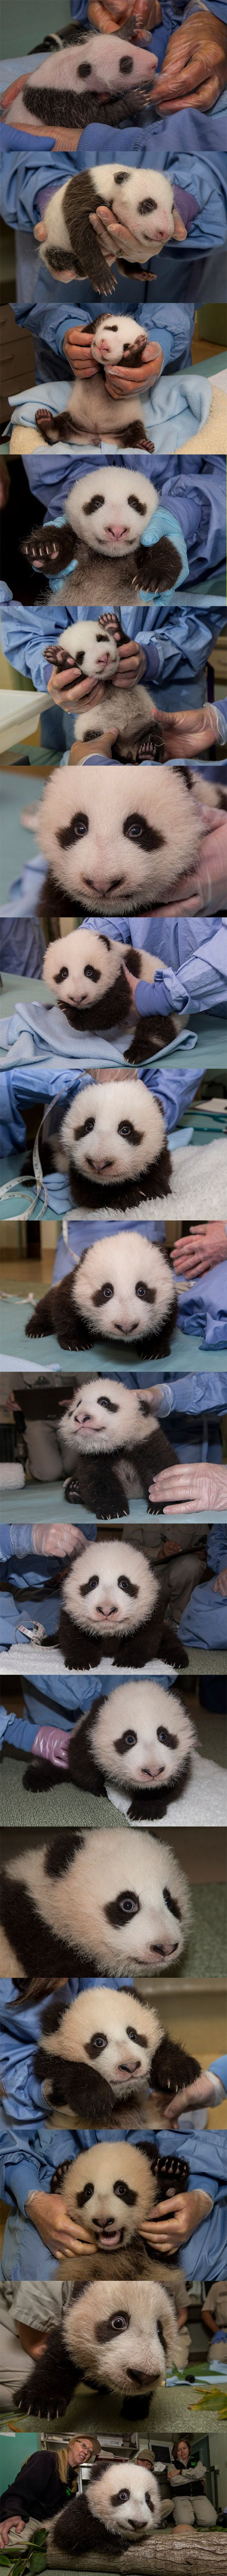 Photo collage of #PandaCub Xiao Liwu's growth from exams 1-17.